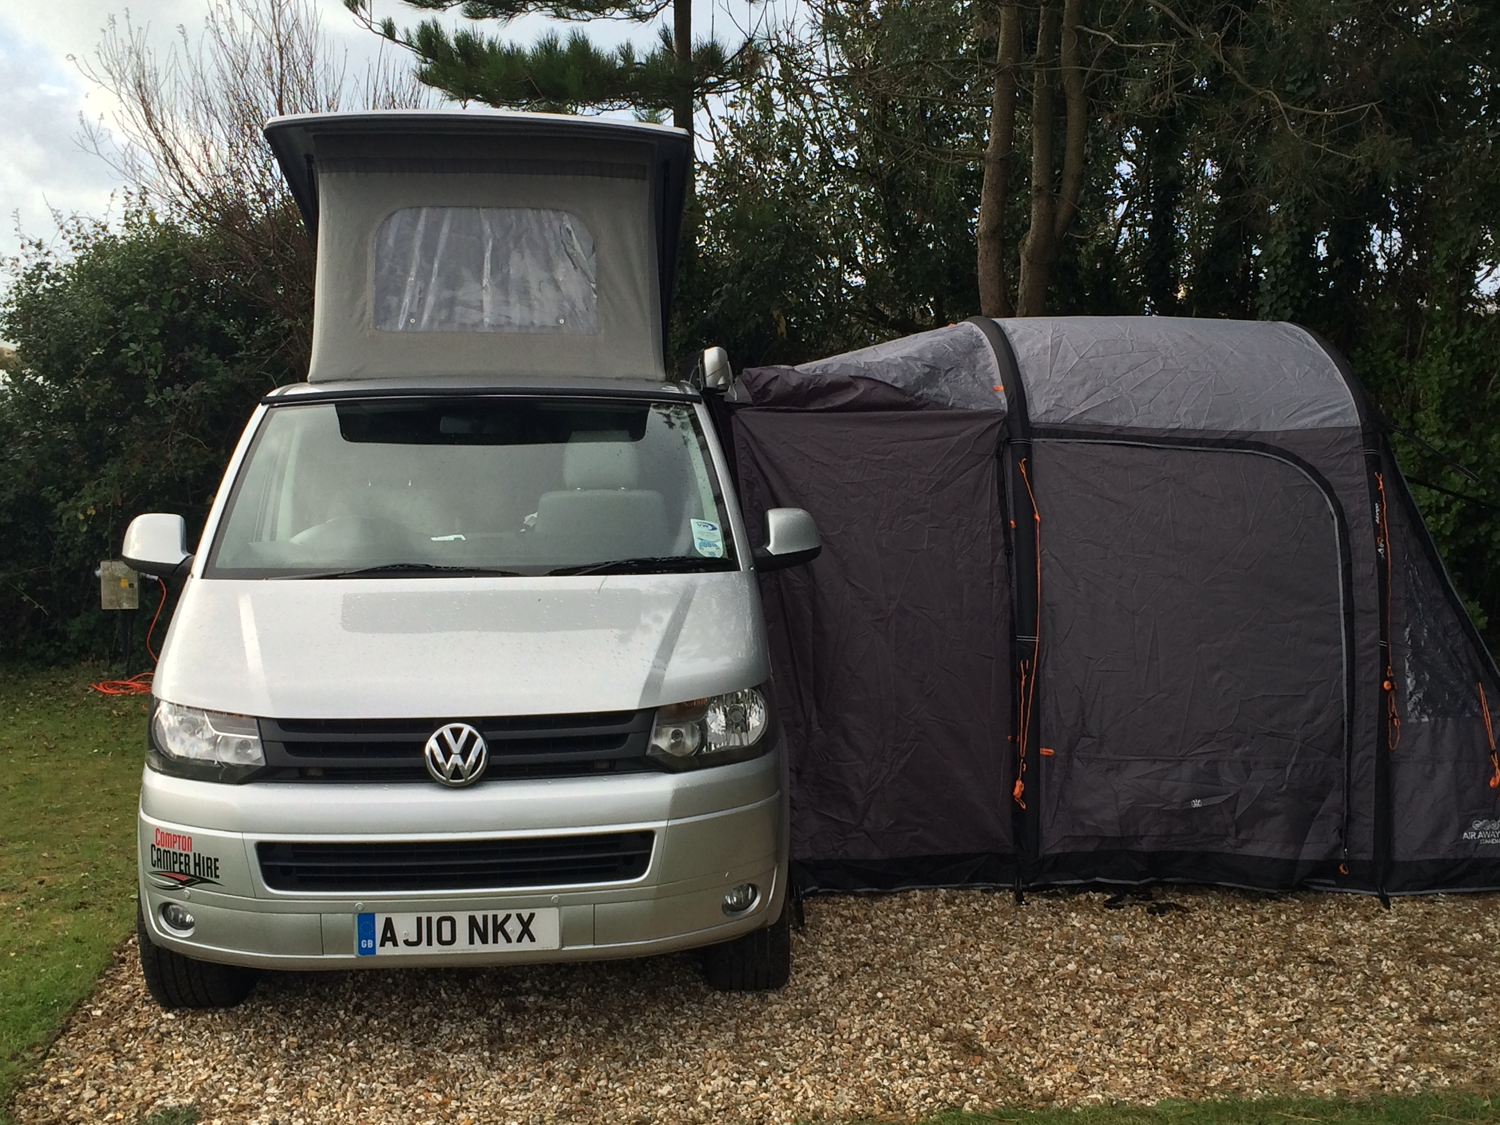 Add a Vango Airbeam side awning for a permanent base camp ...